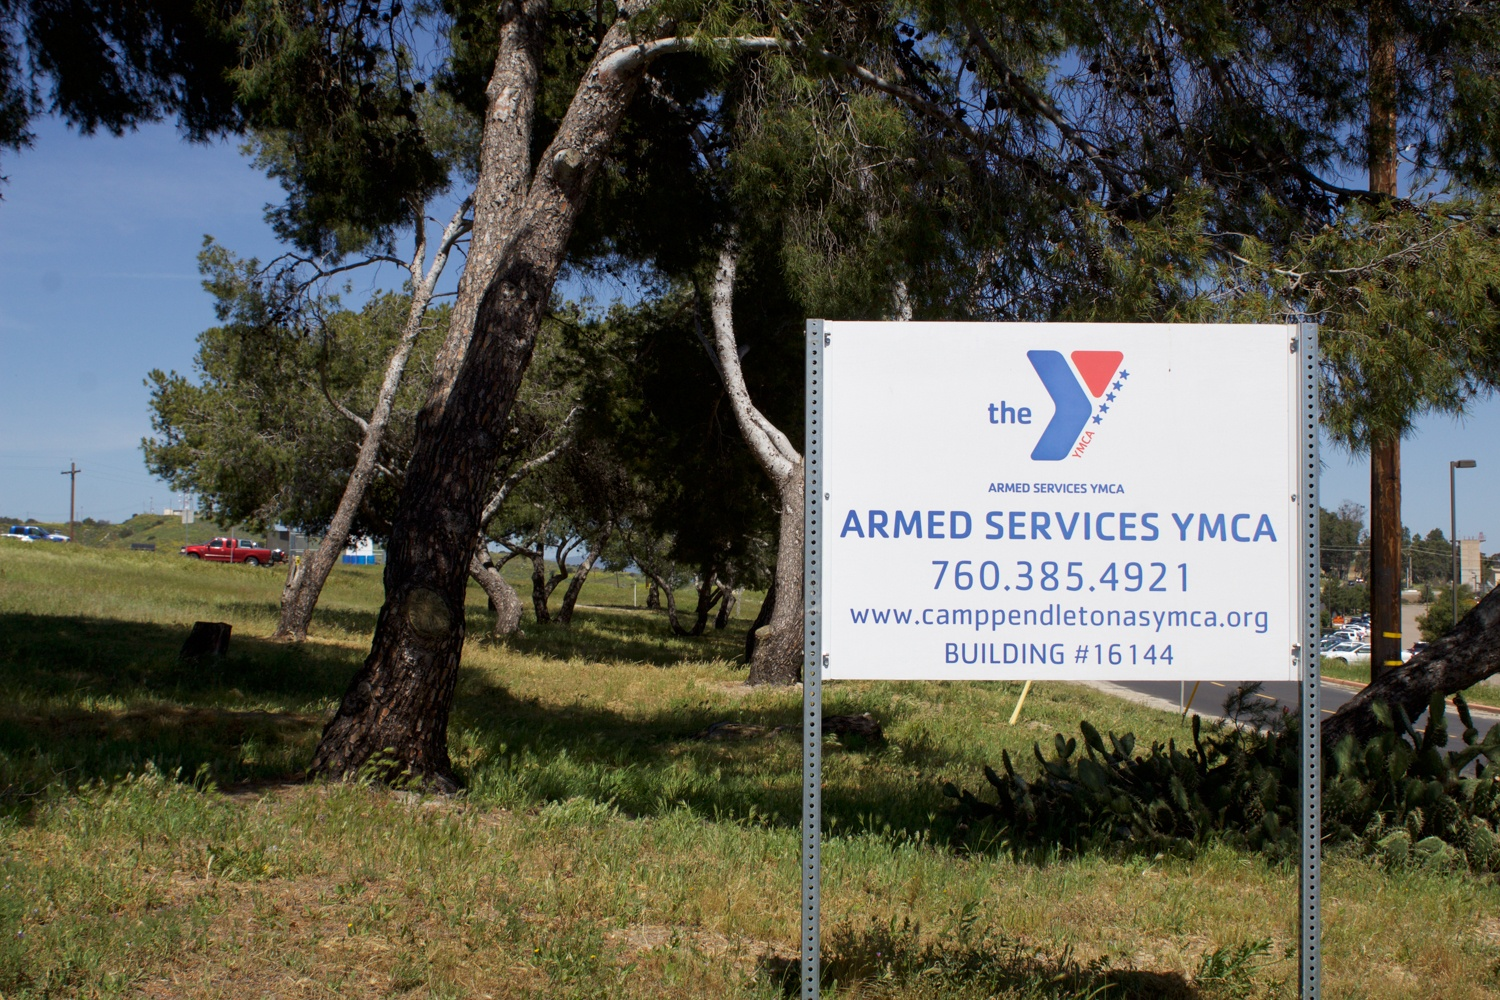 camp pendleton asymca office